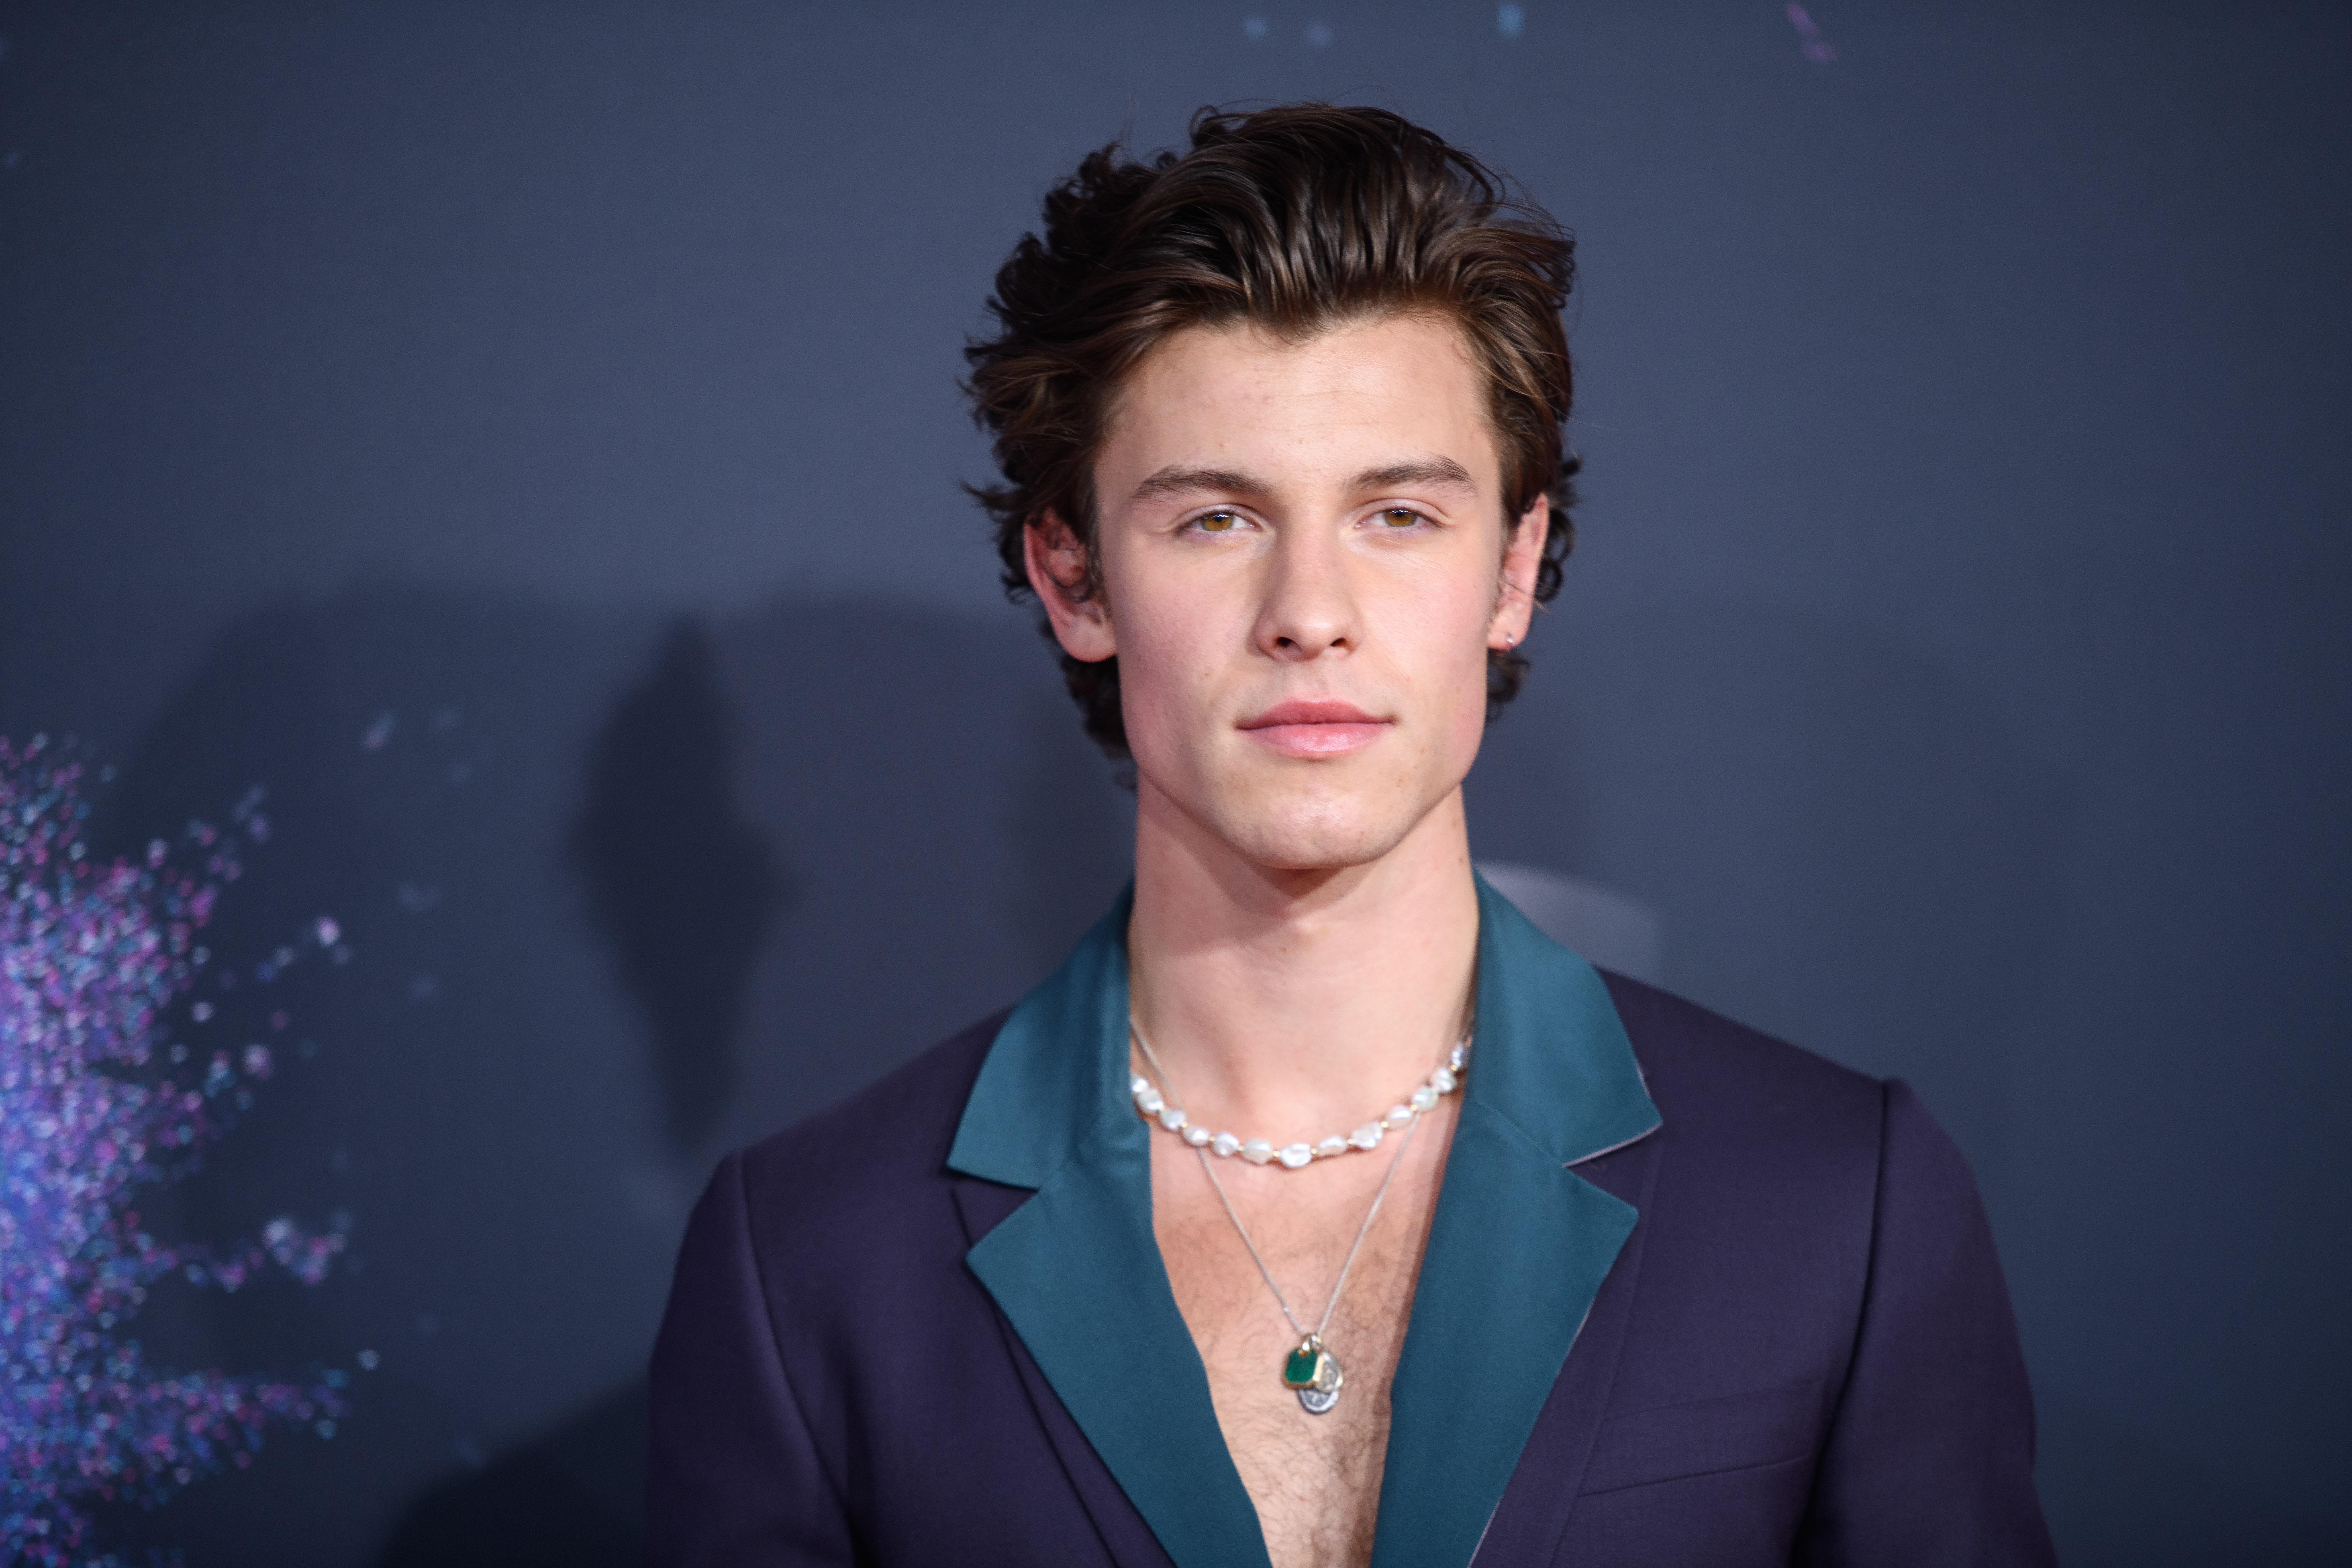 New Music Friday: Shawn Mendes Drops A New Album, The Weeknd & Rosalía Remix